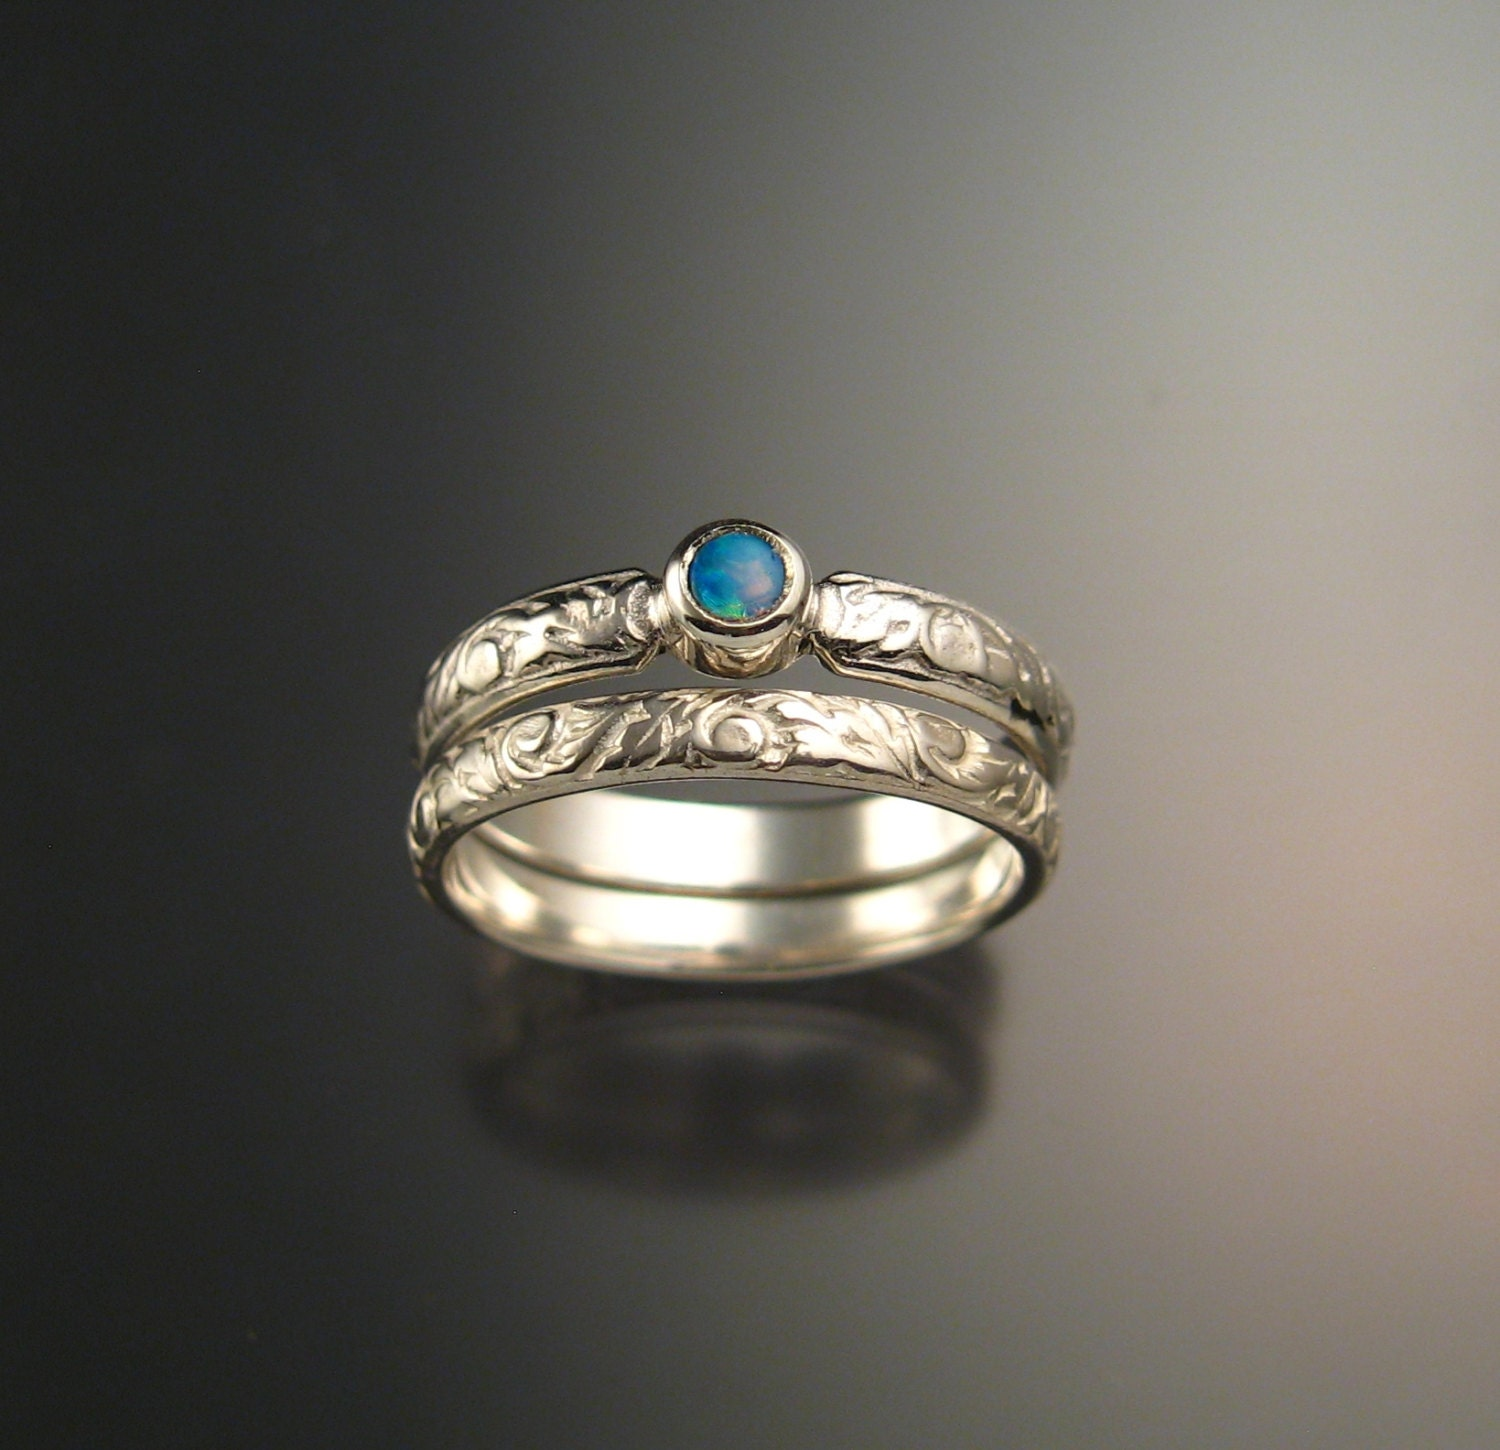 opal wedding set sterling silver victorian bezel set two ring set made to order in your size - Opal Wedding Ring Sets